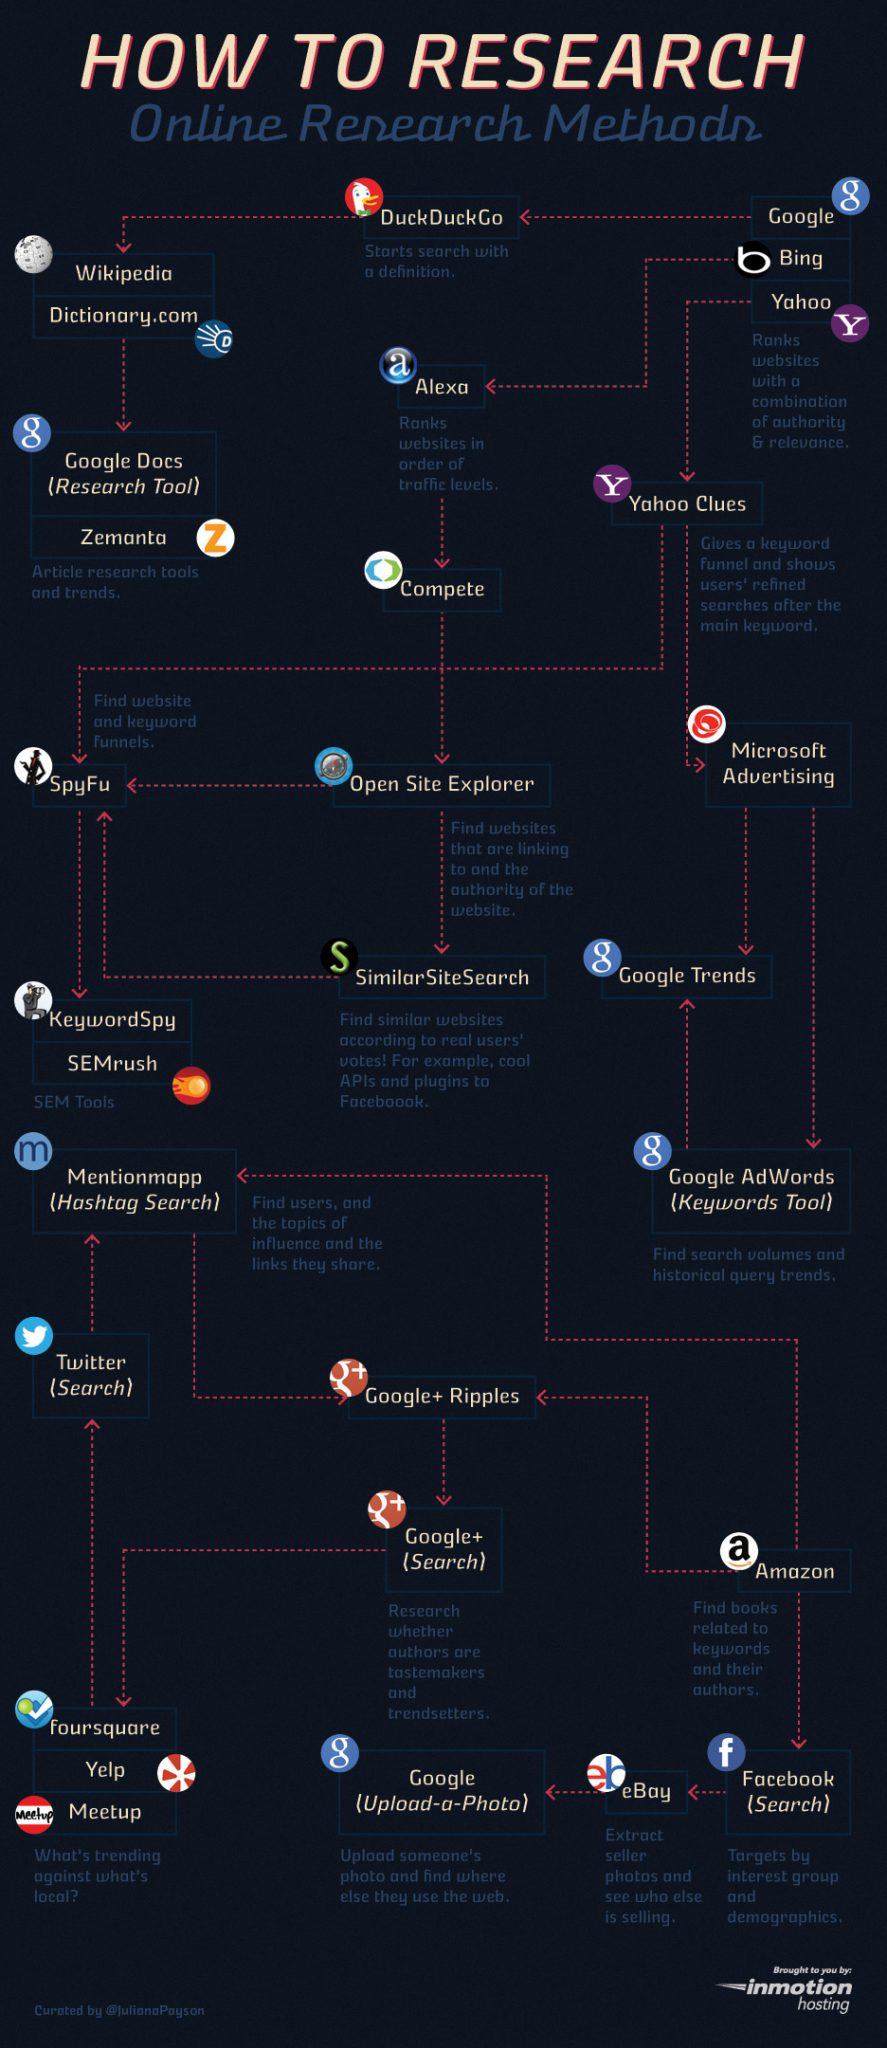 #IMHhangout | How to Research [Infographic] | The Official ...